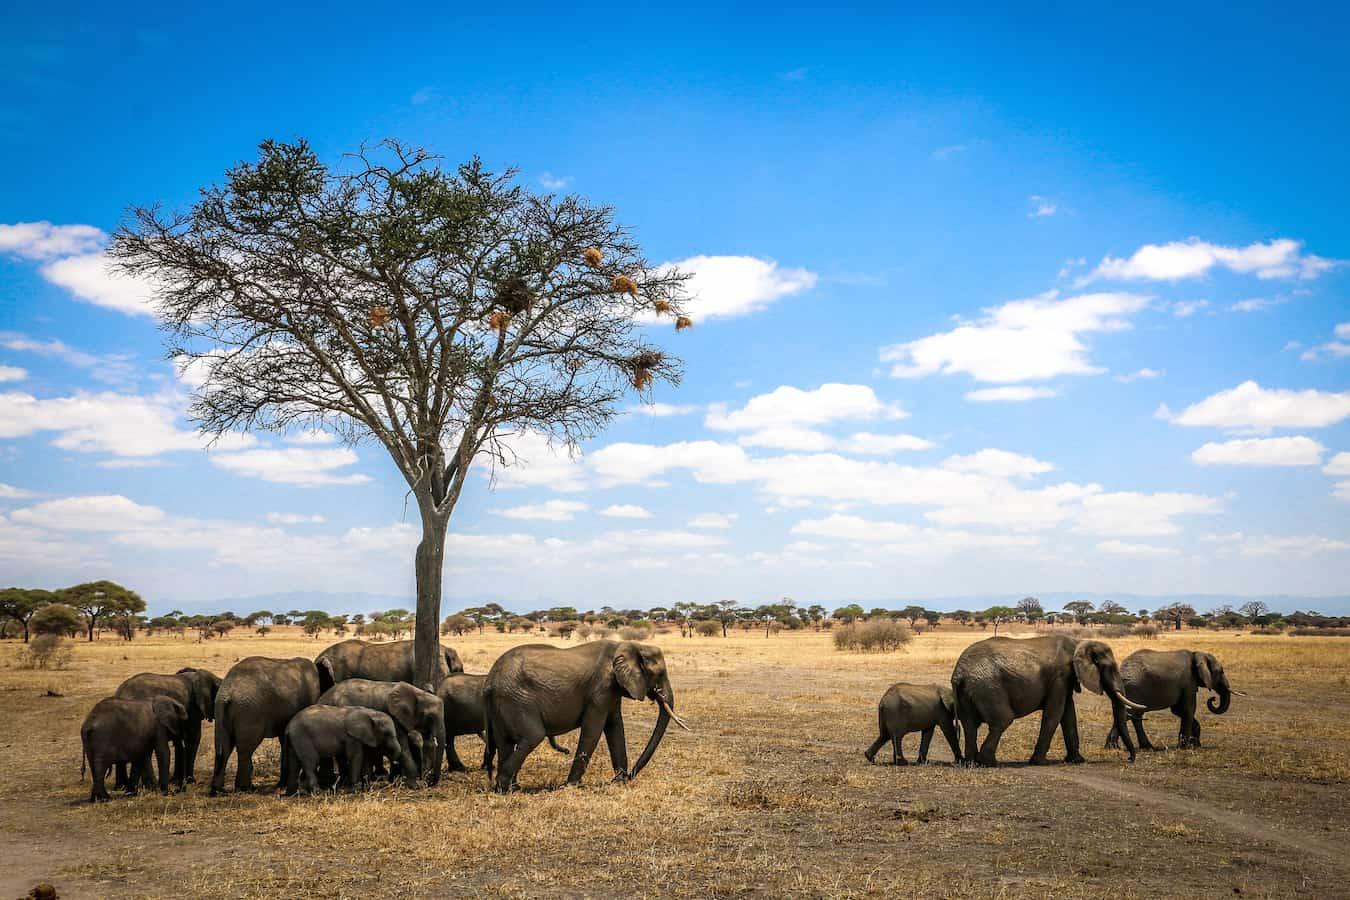 Herd of Endangered Elephants in Tanzania